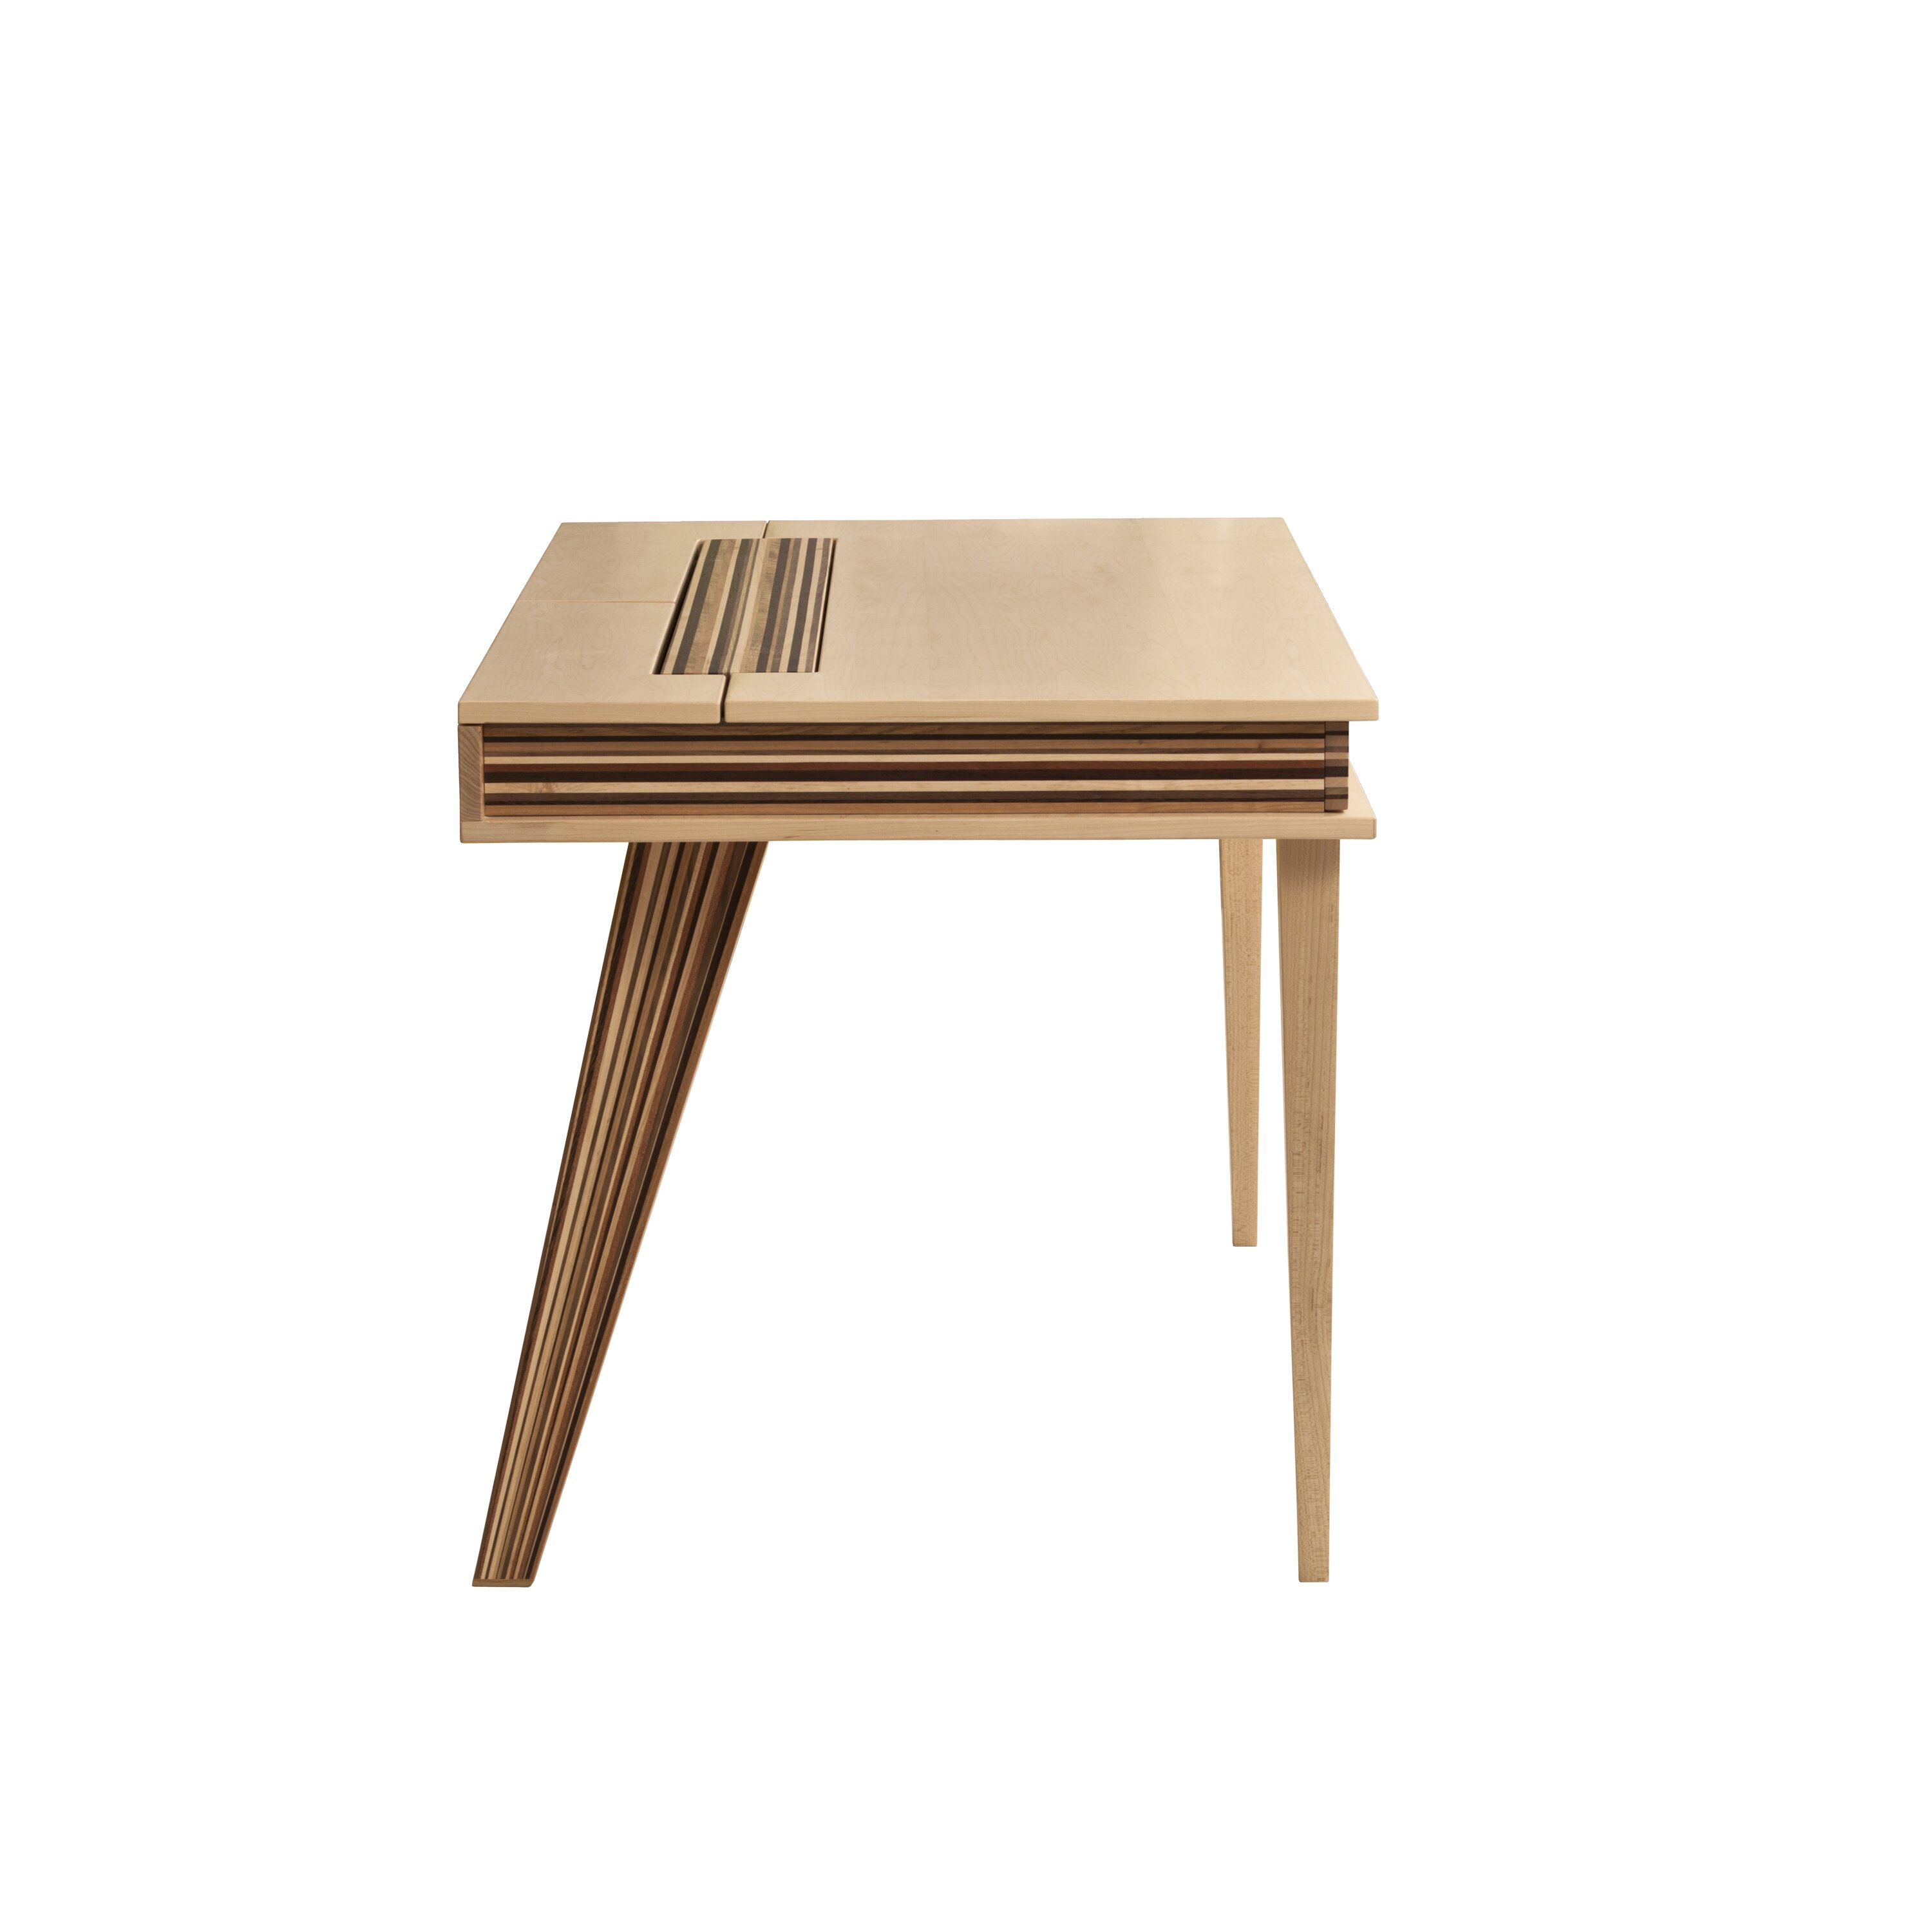 writing desks furniture Products 1 - 48 of 358  find writing desks at officefurniturecom modern writing tables are ideal for use  in home offices when you want a simple design & save.